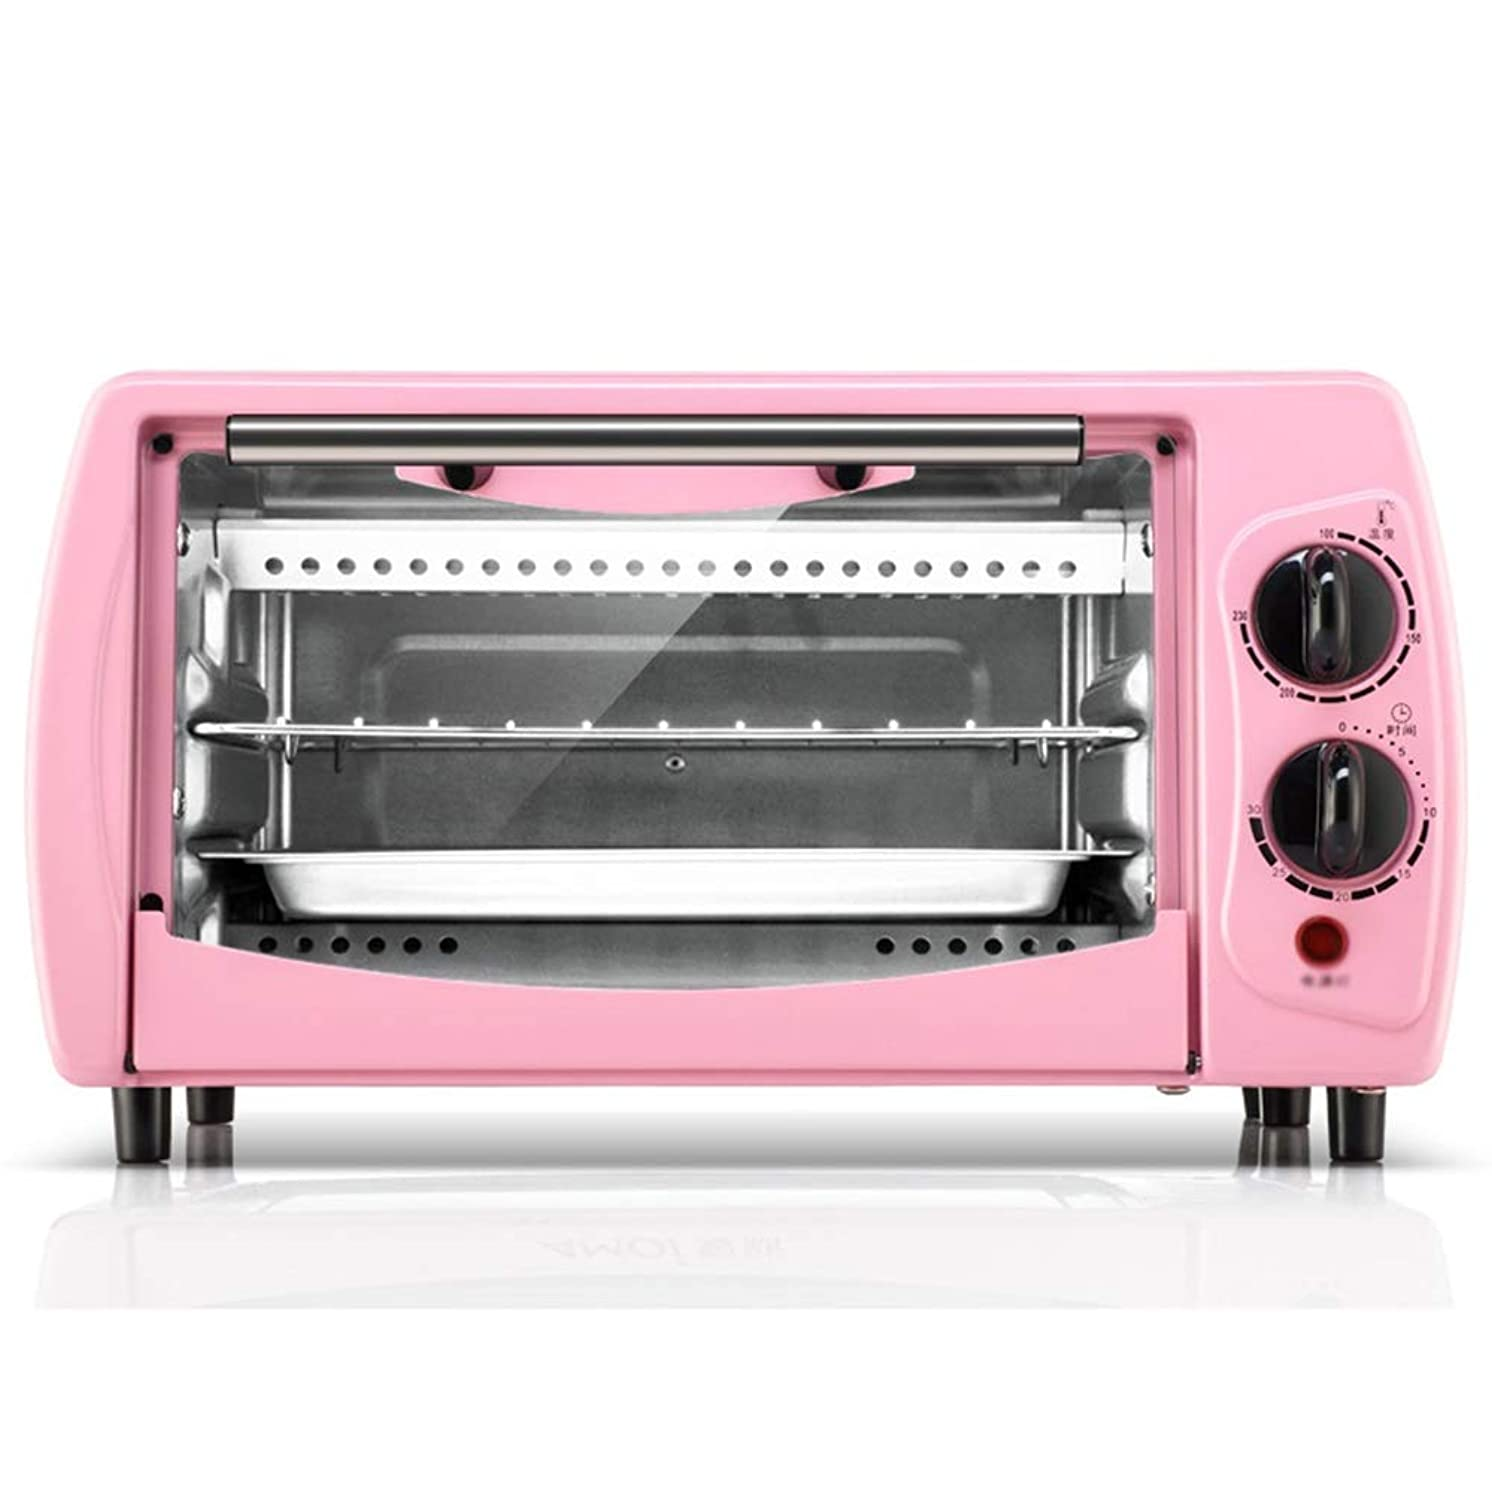 Excellent.store Oven Multi-function Mini Oven Home Electric Oven Baking Roast Chicken Wings Fish Oven - toastation